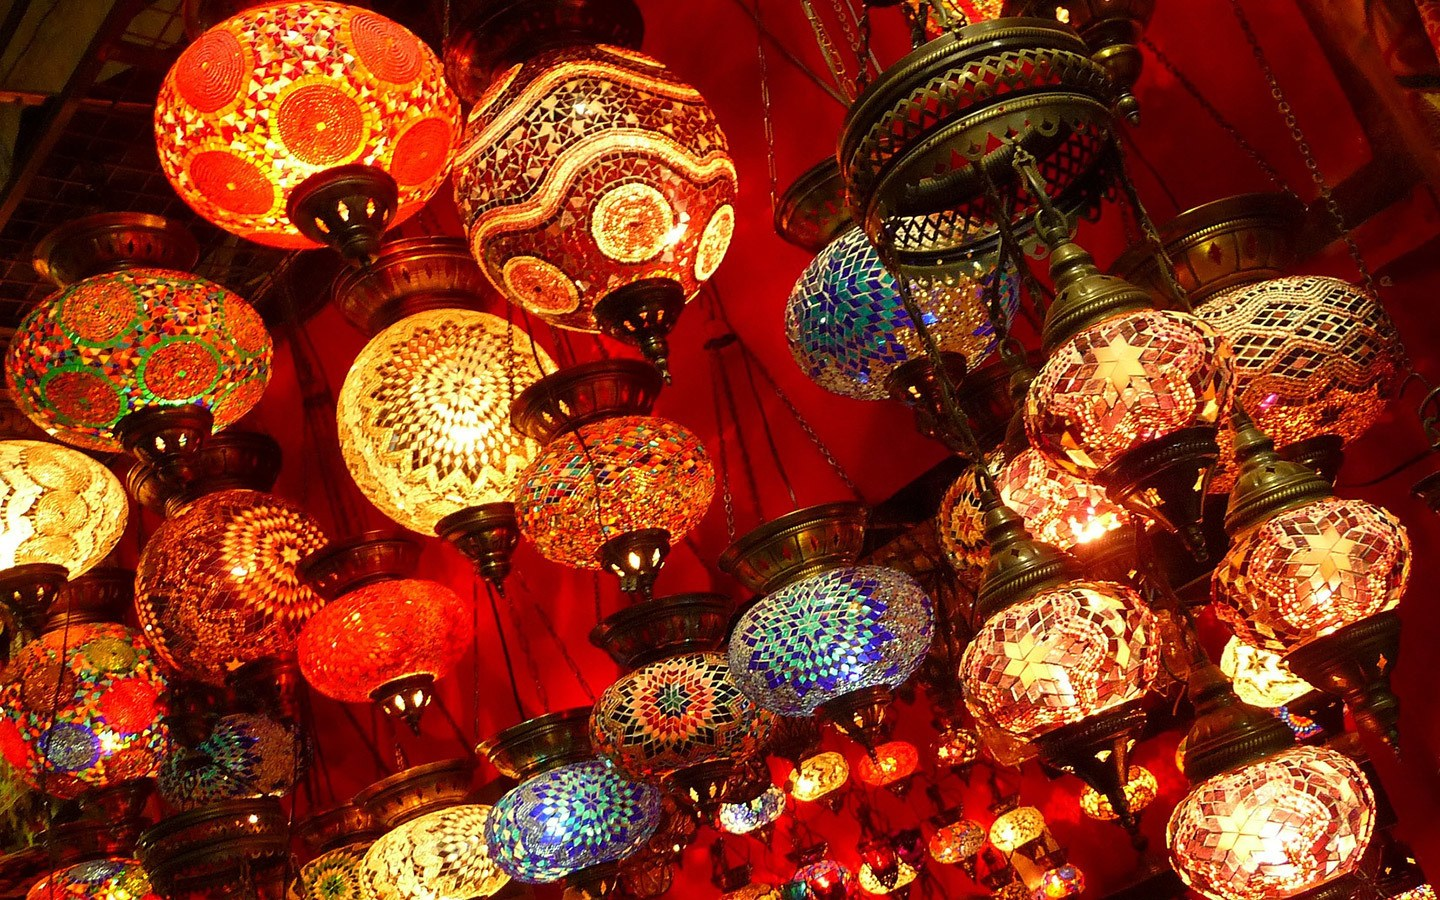 Colouful lanterns in the Grand Bazaar – one day in Istanbul